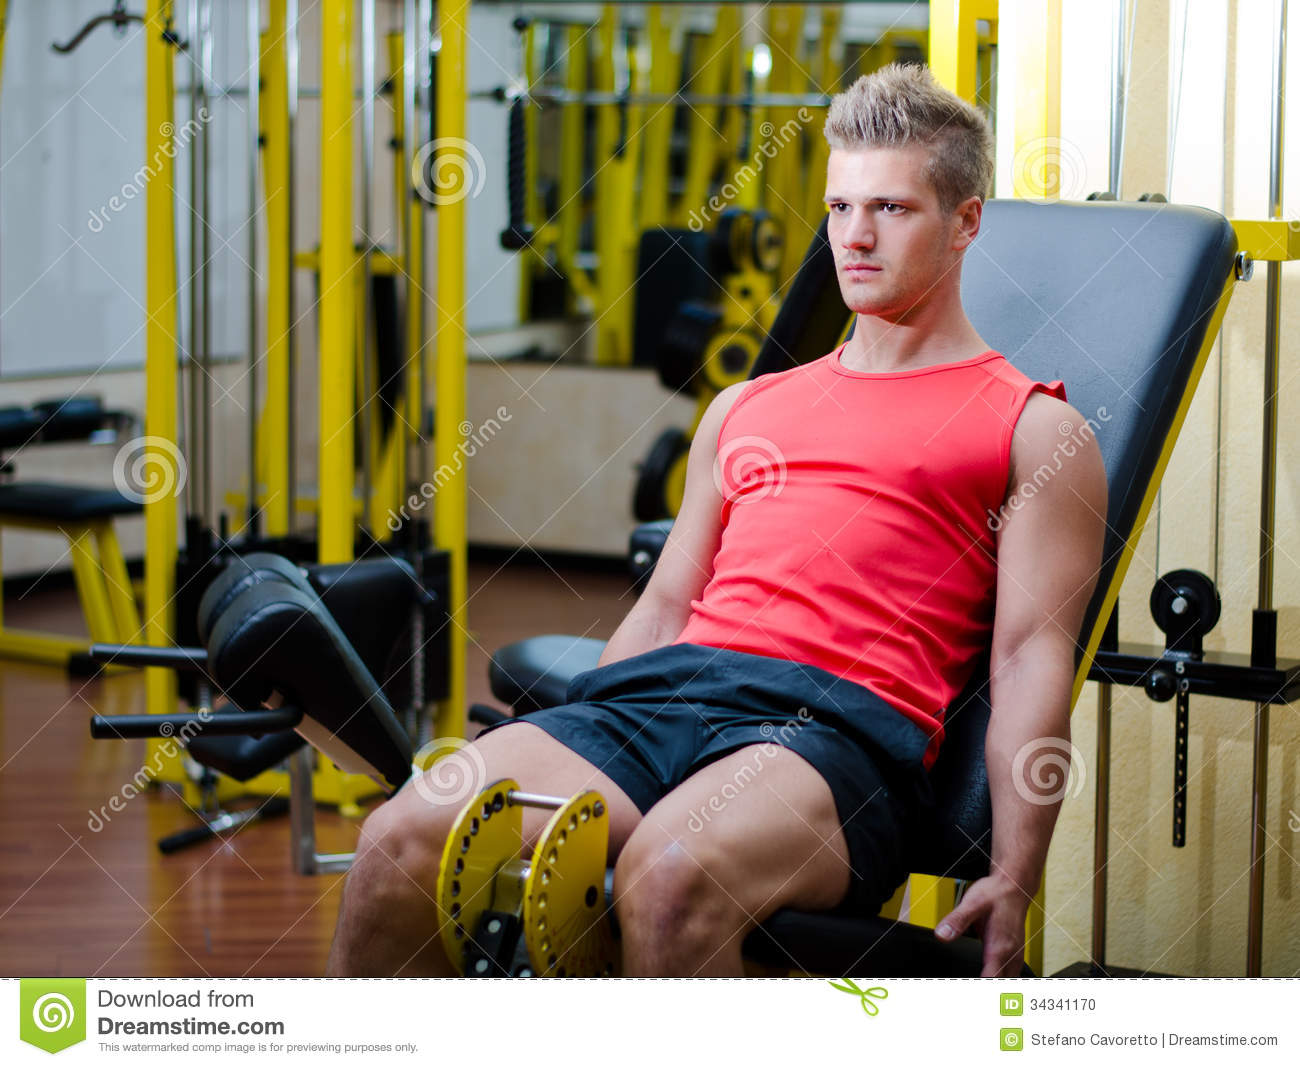 fitness men working out - photo #18